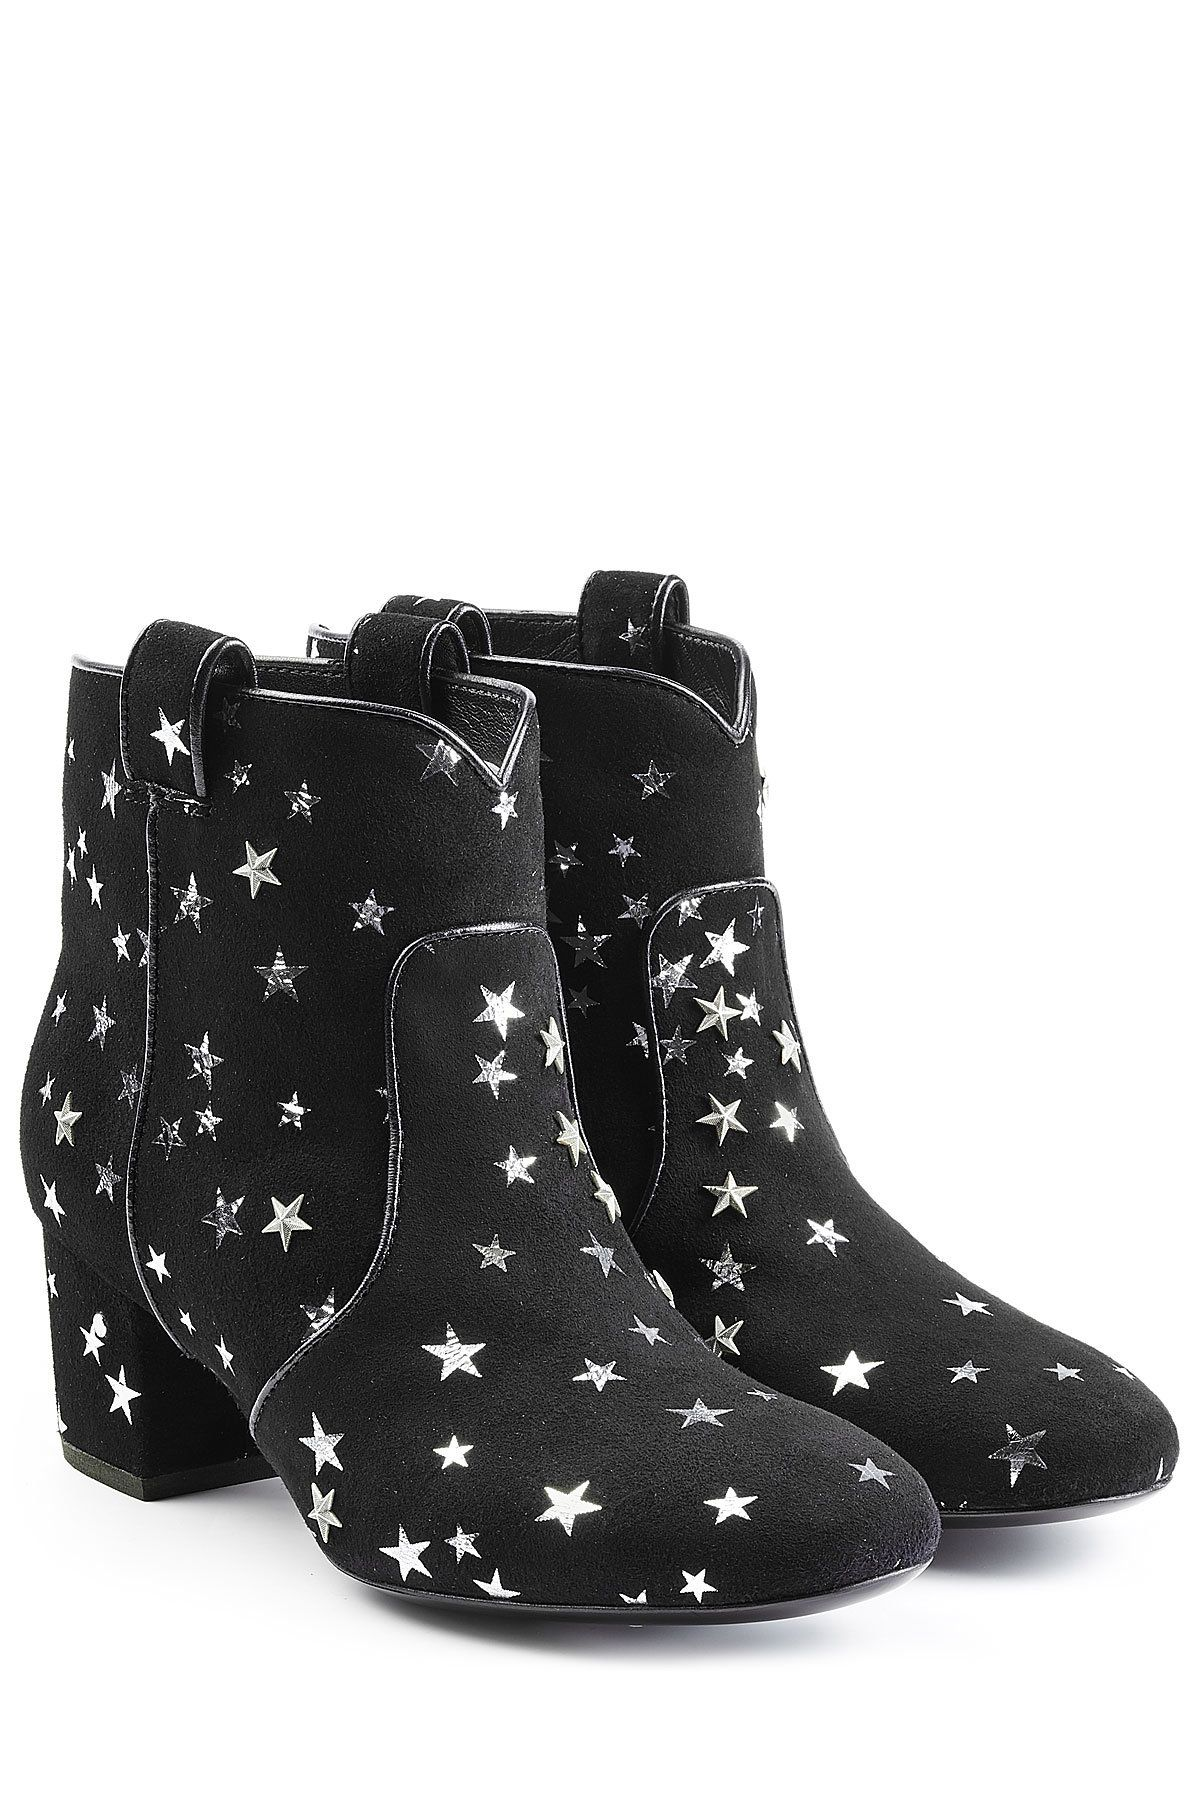 3471865d9c5 Laurence Dacade Suede Ankle Boots with Star Print | Emily Grace ...